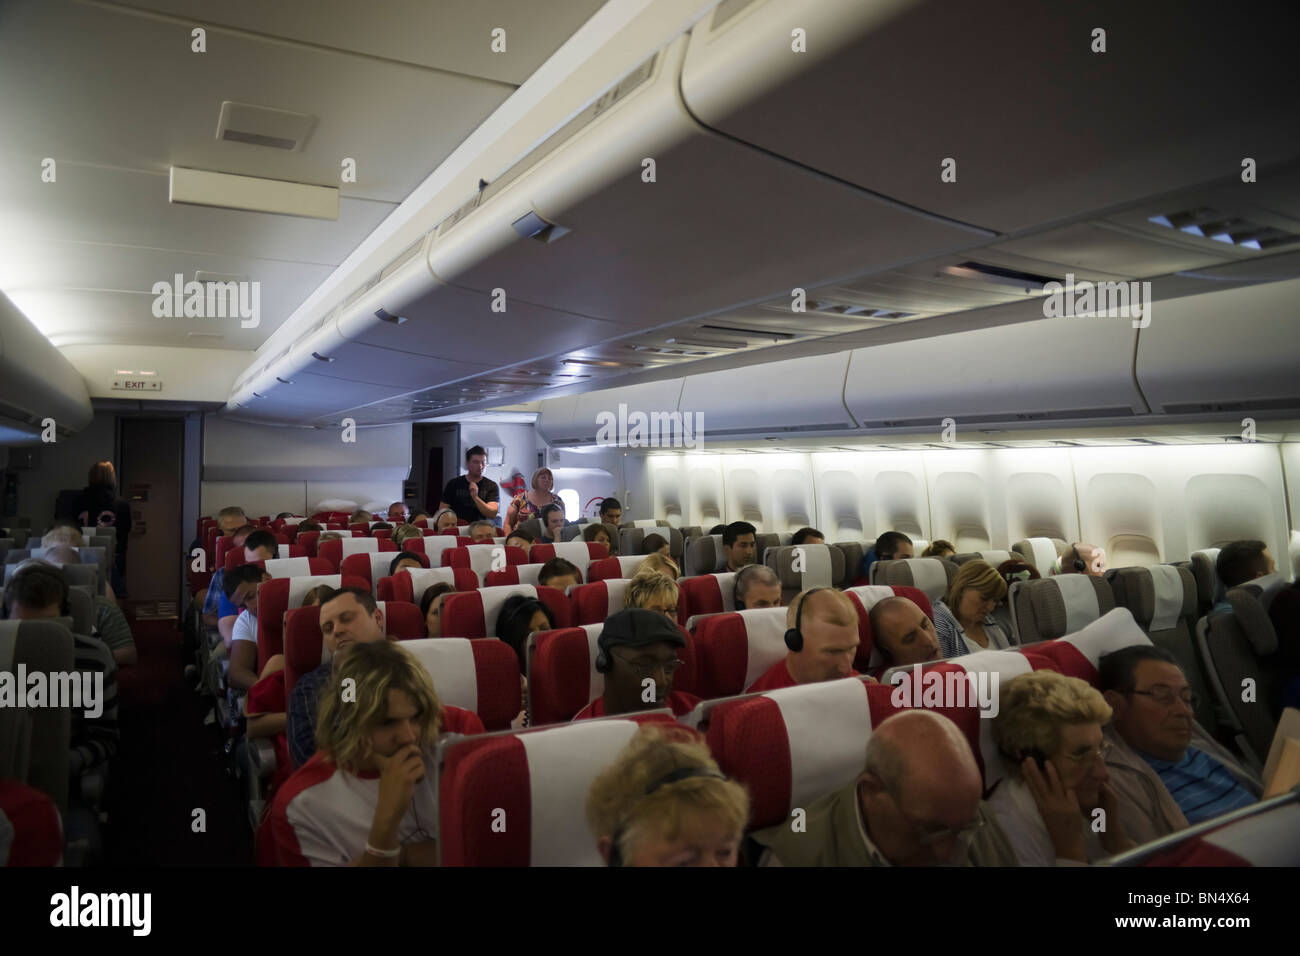 intrieur de virgin atlantic boeing 747 jumbo jet transatlantique avec la section de lconomie et les passagers